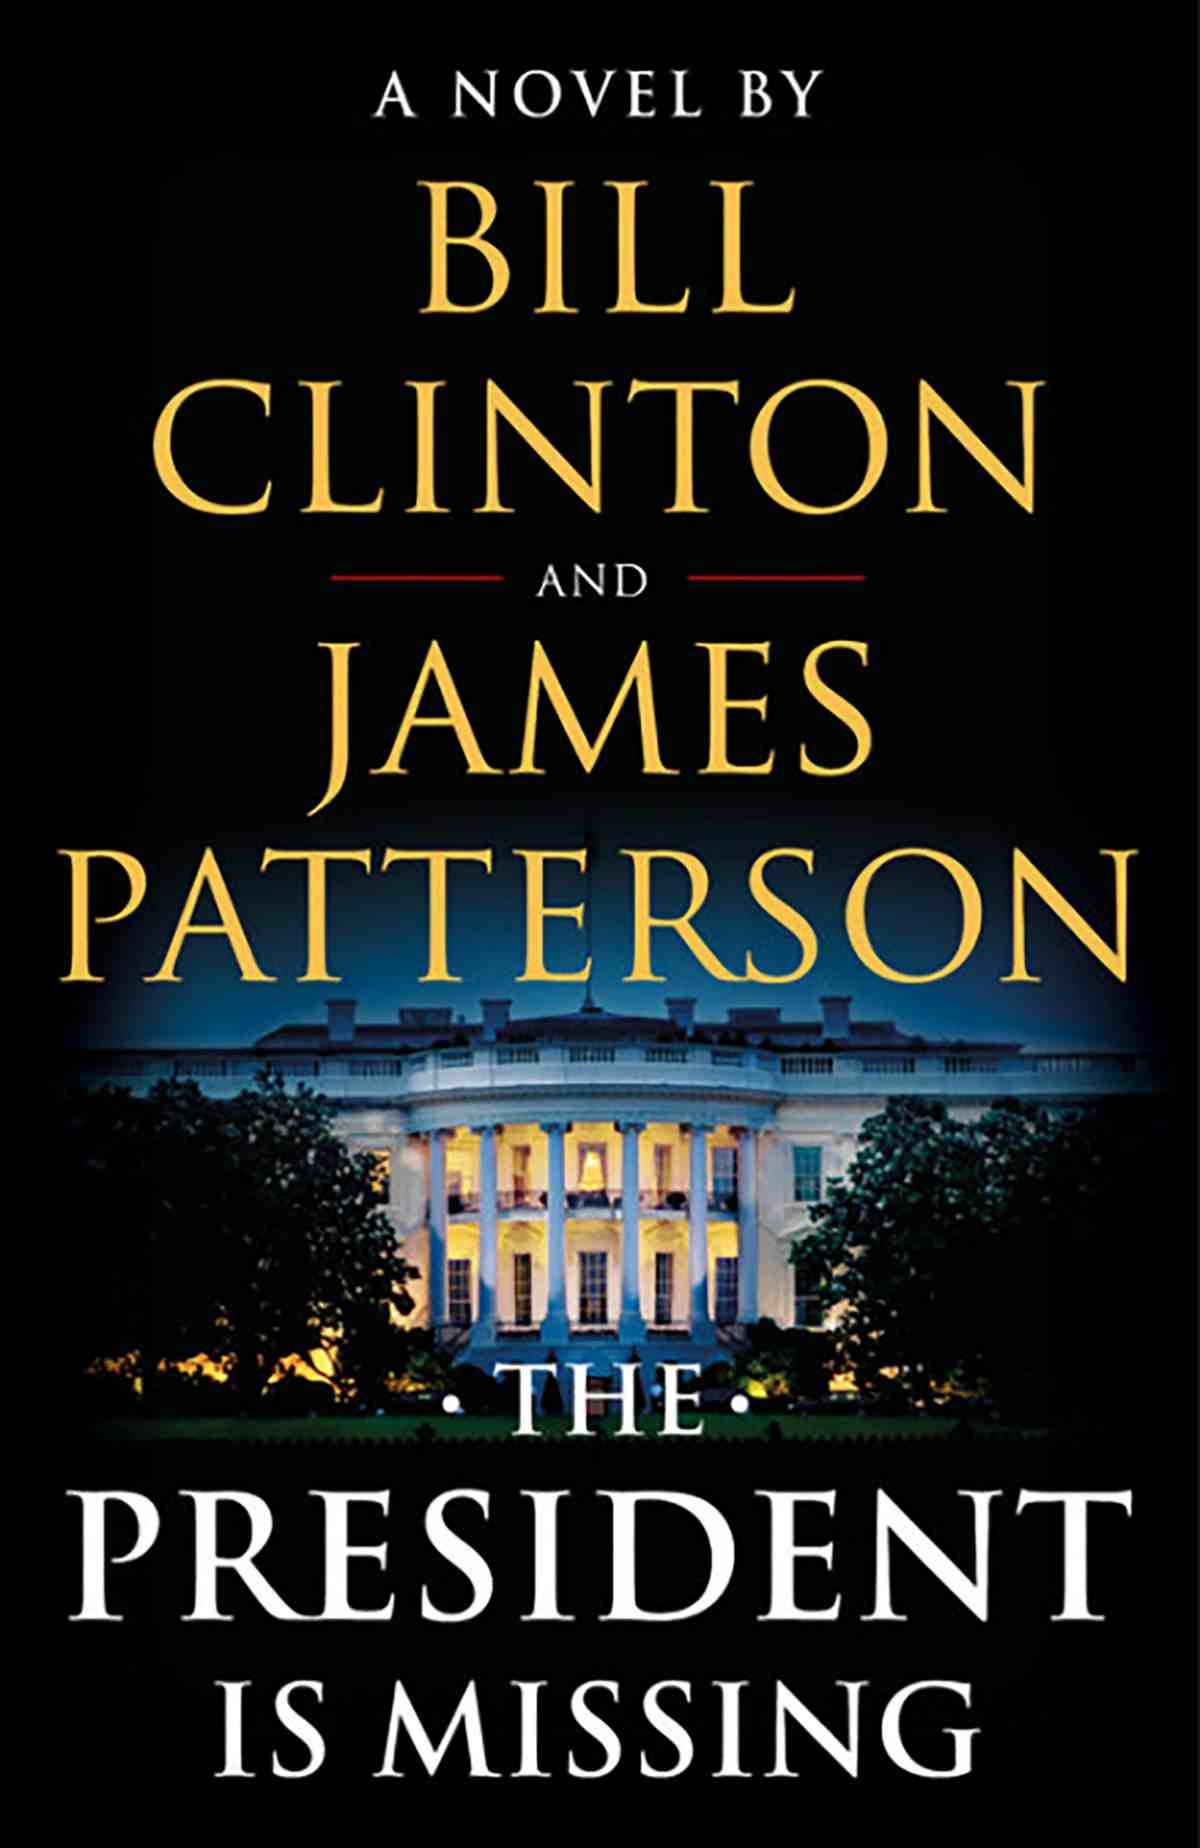 The President is Missing   Bestselling Amazon Kindle Books Of 2018